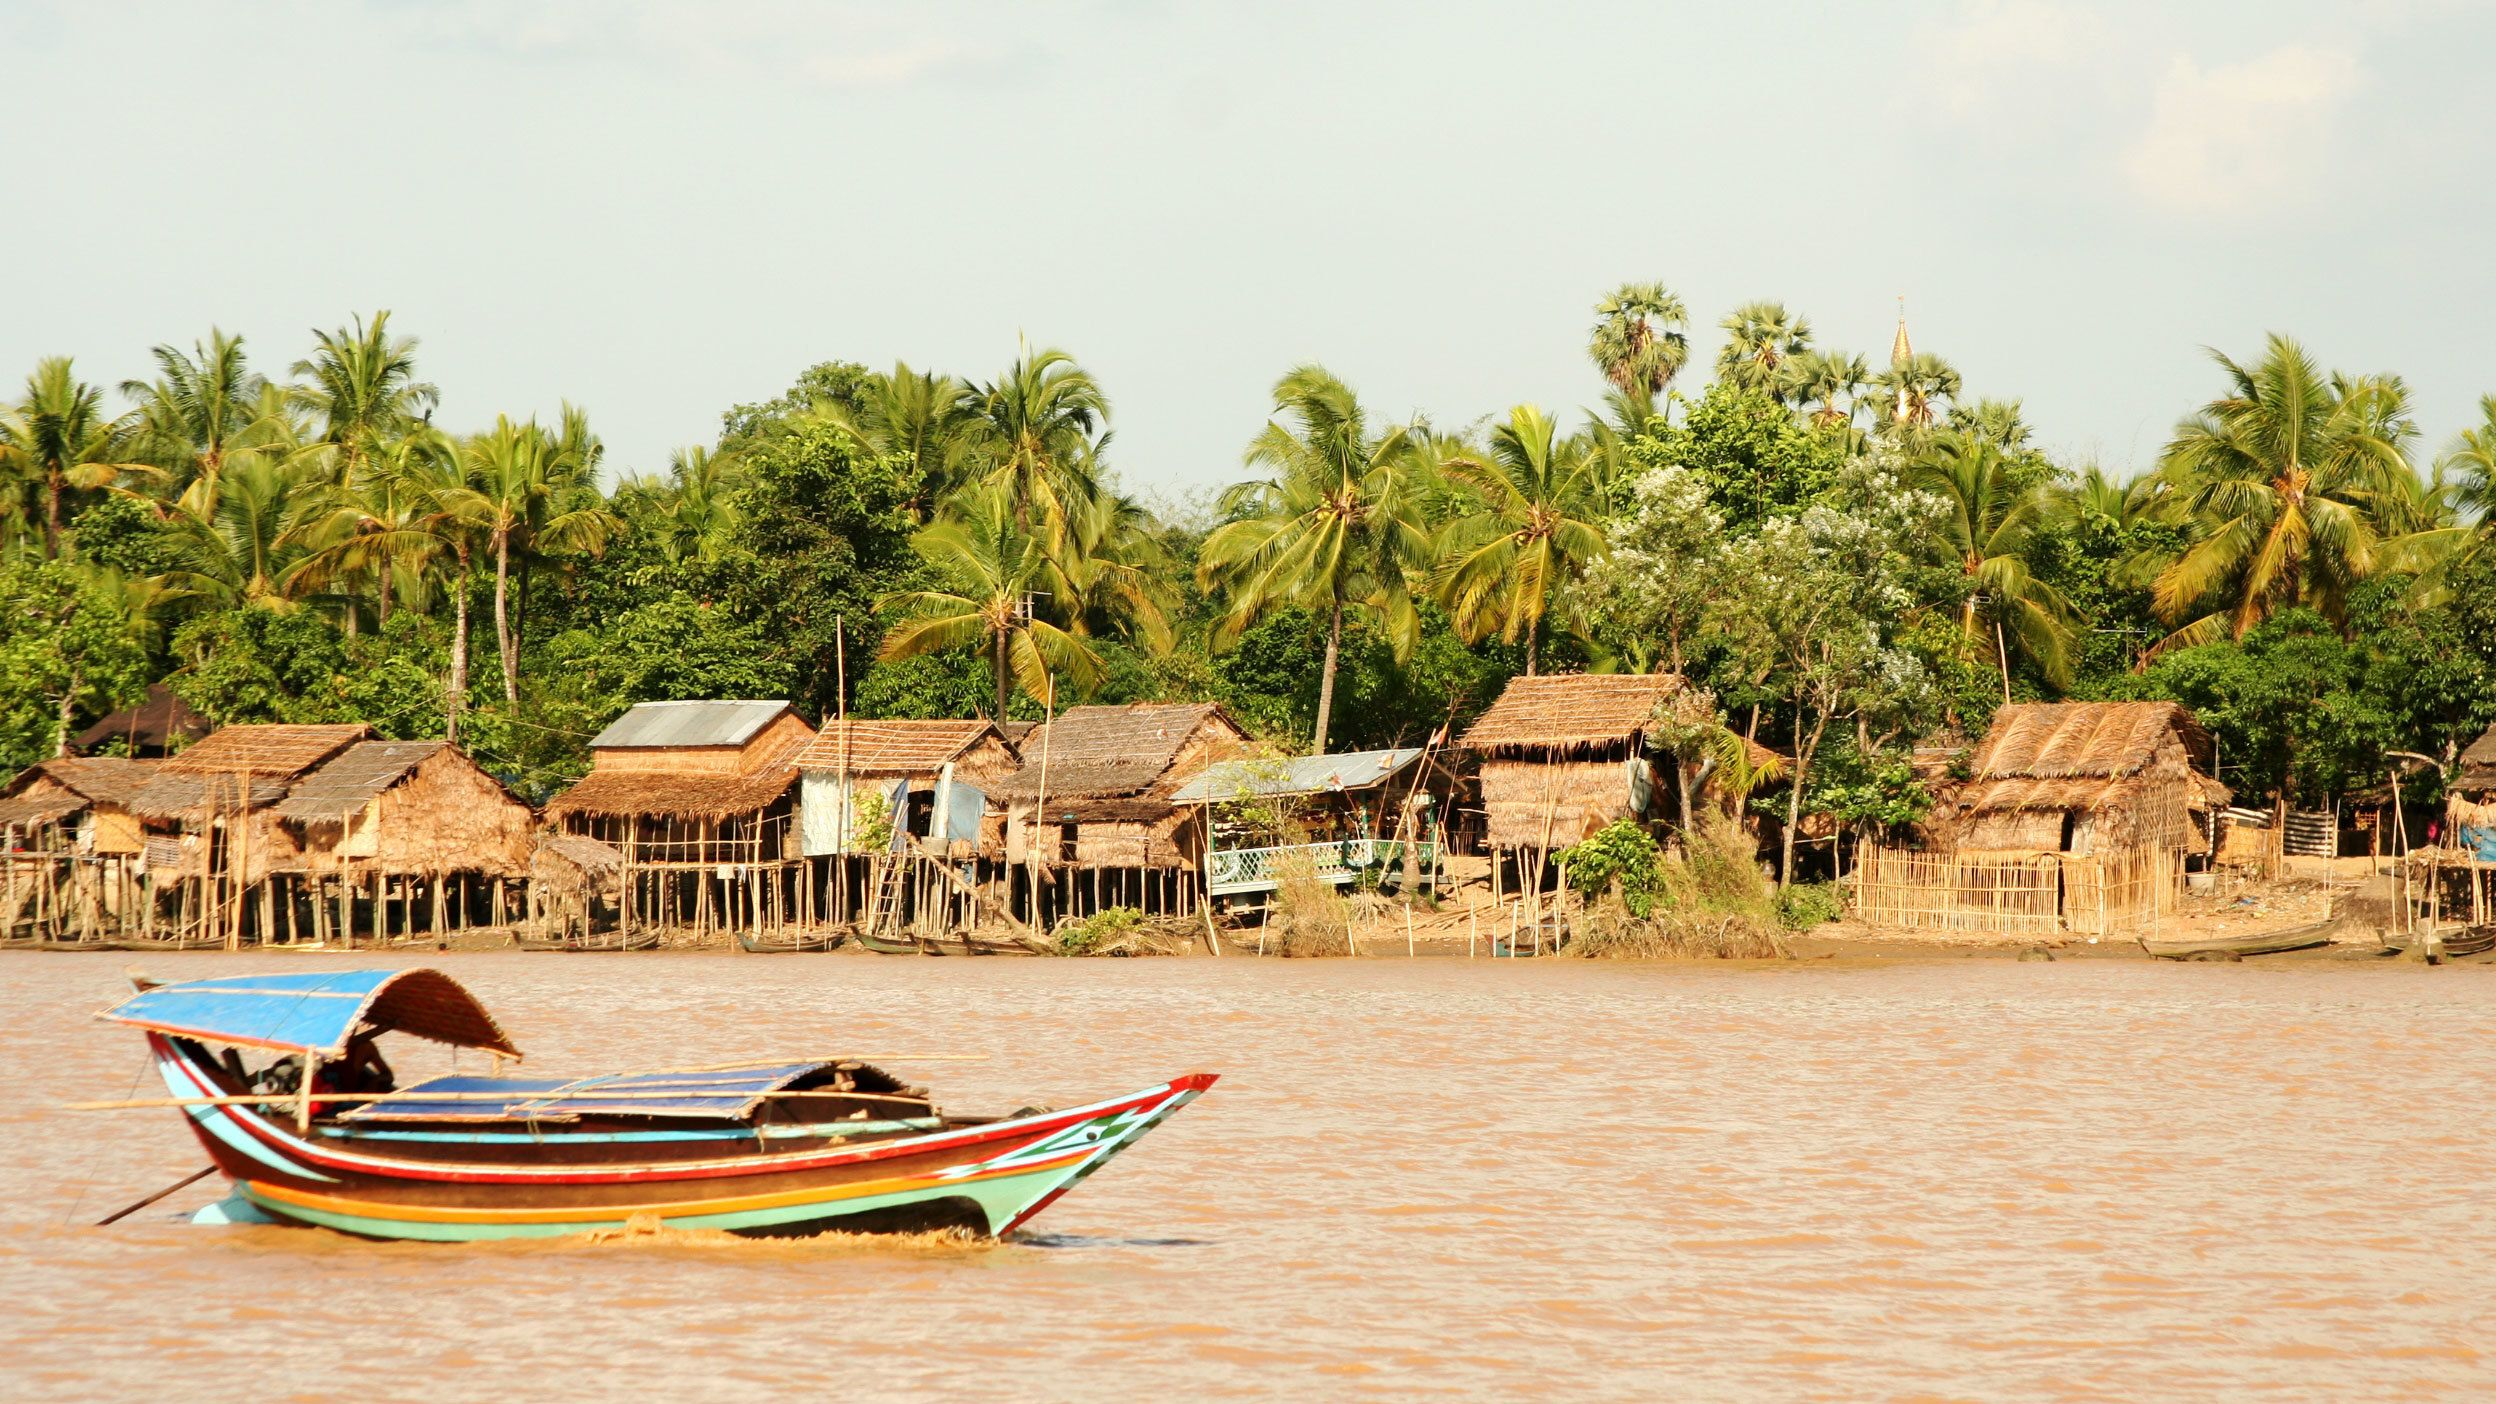 Boat passing a village along the bank of the Yangon River in Myanmar